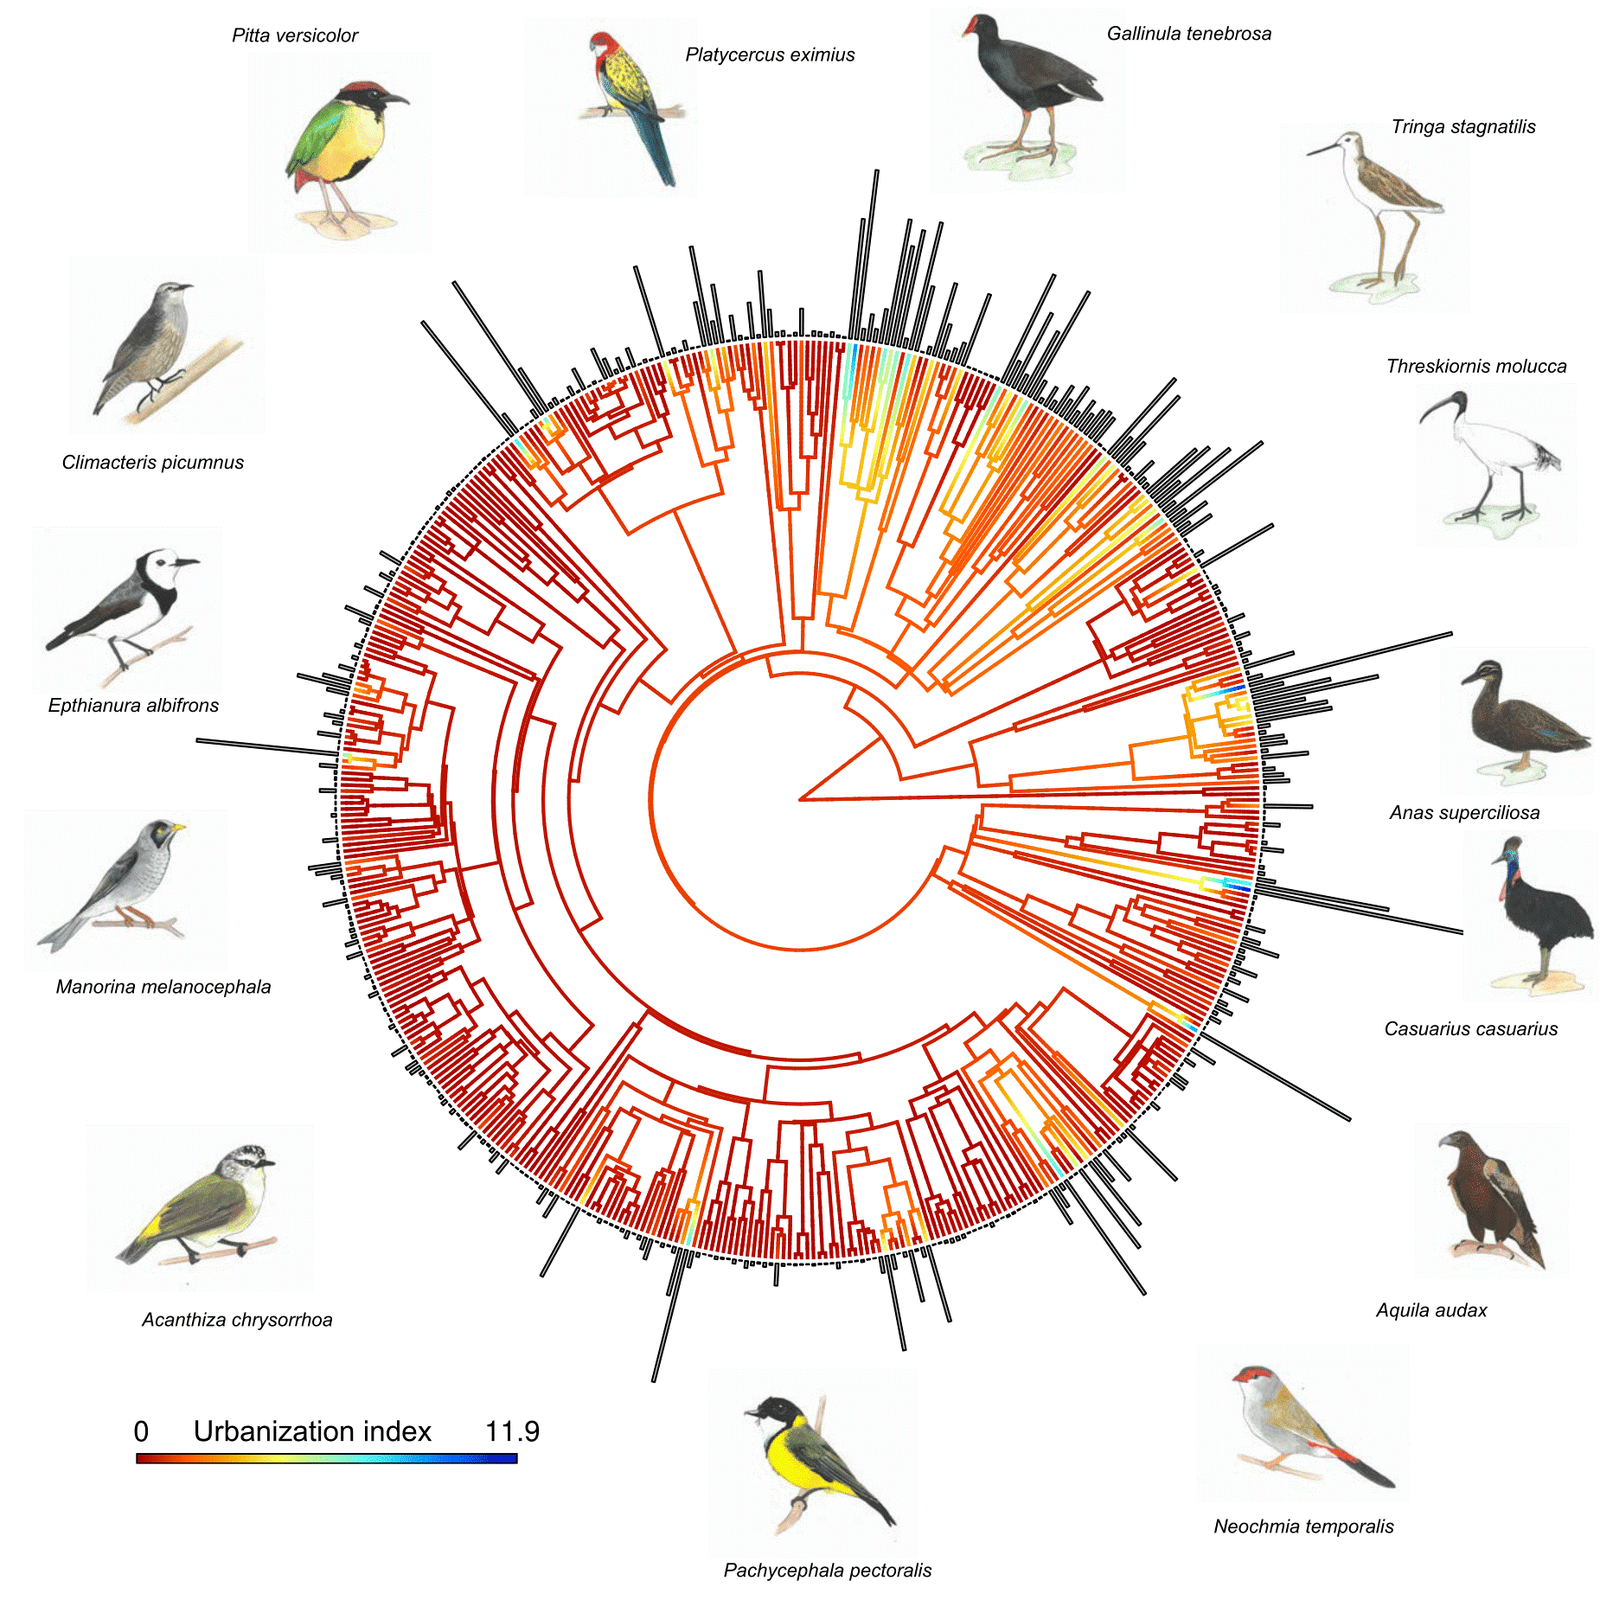 The phylogenetic tree, showing the urbanization score for 477 species in Australia